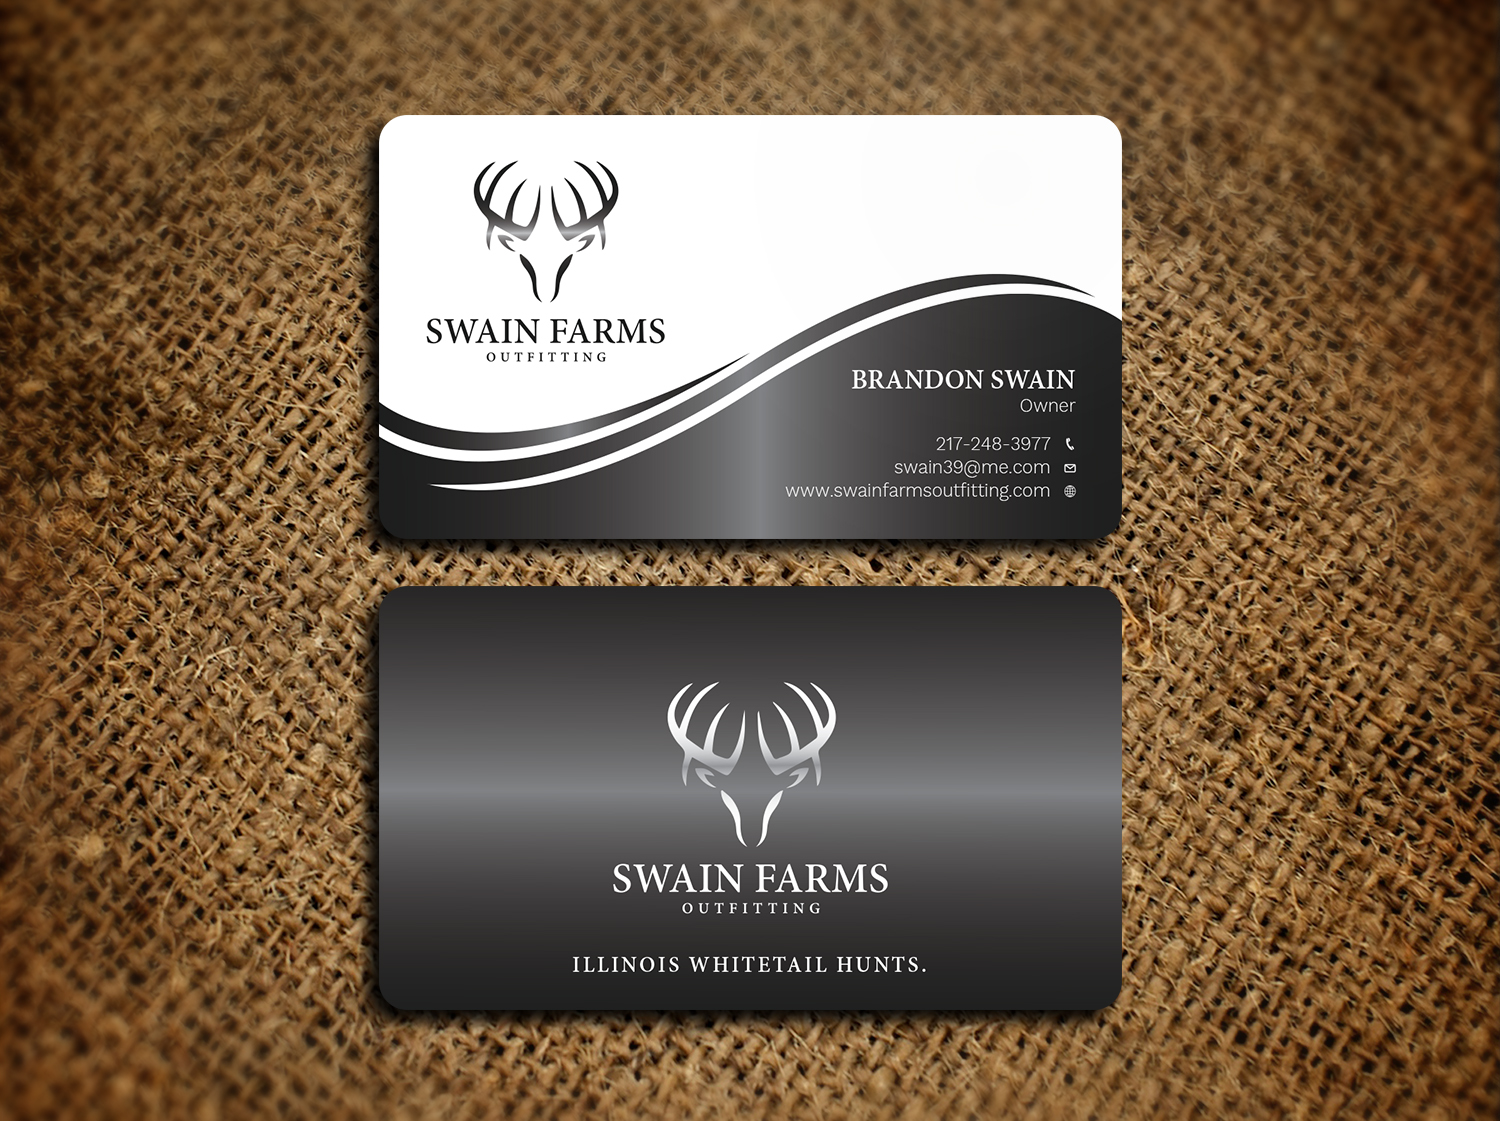 Modern professional hunting business card design for a company by business card design by avanger000 for this project design 17461199 colourmoves